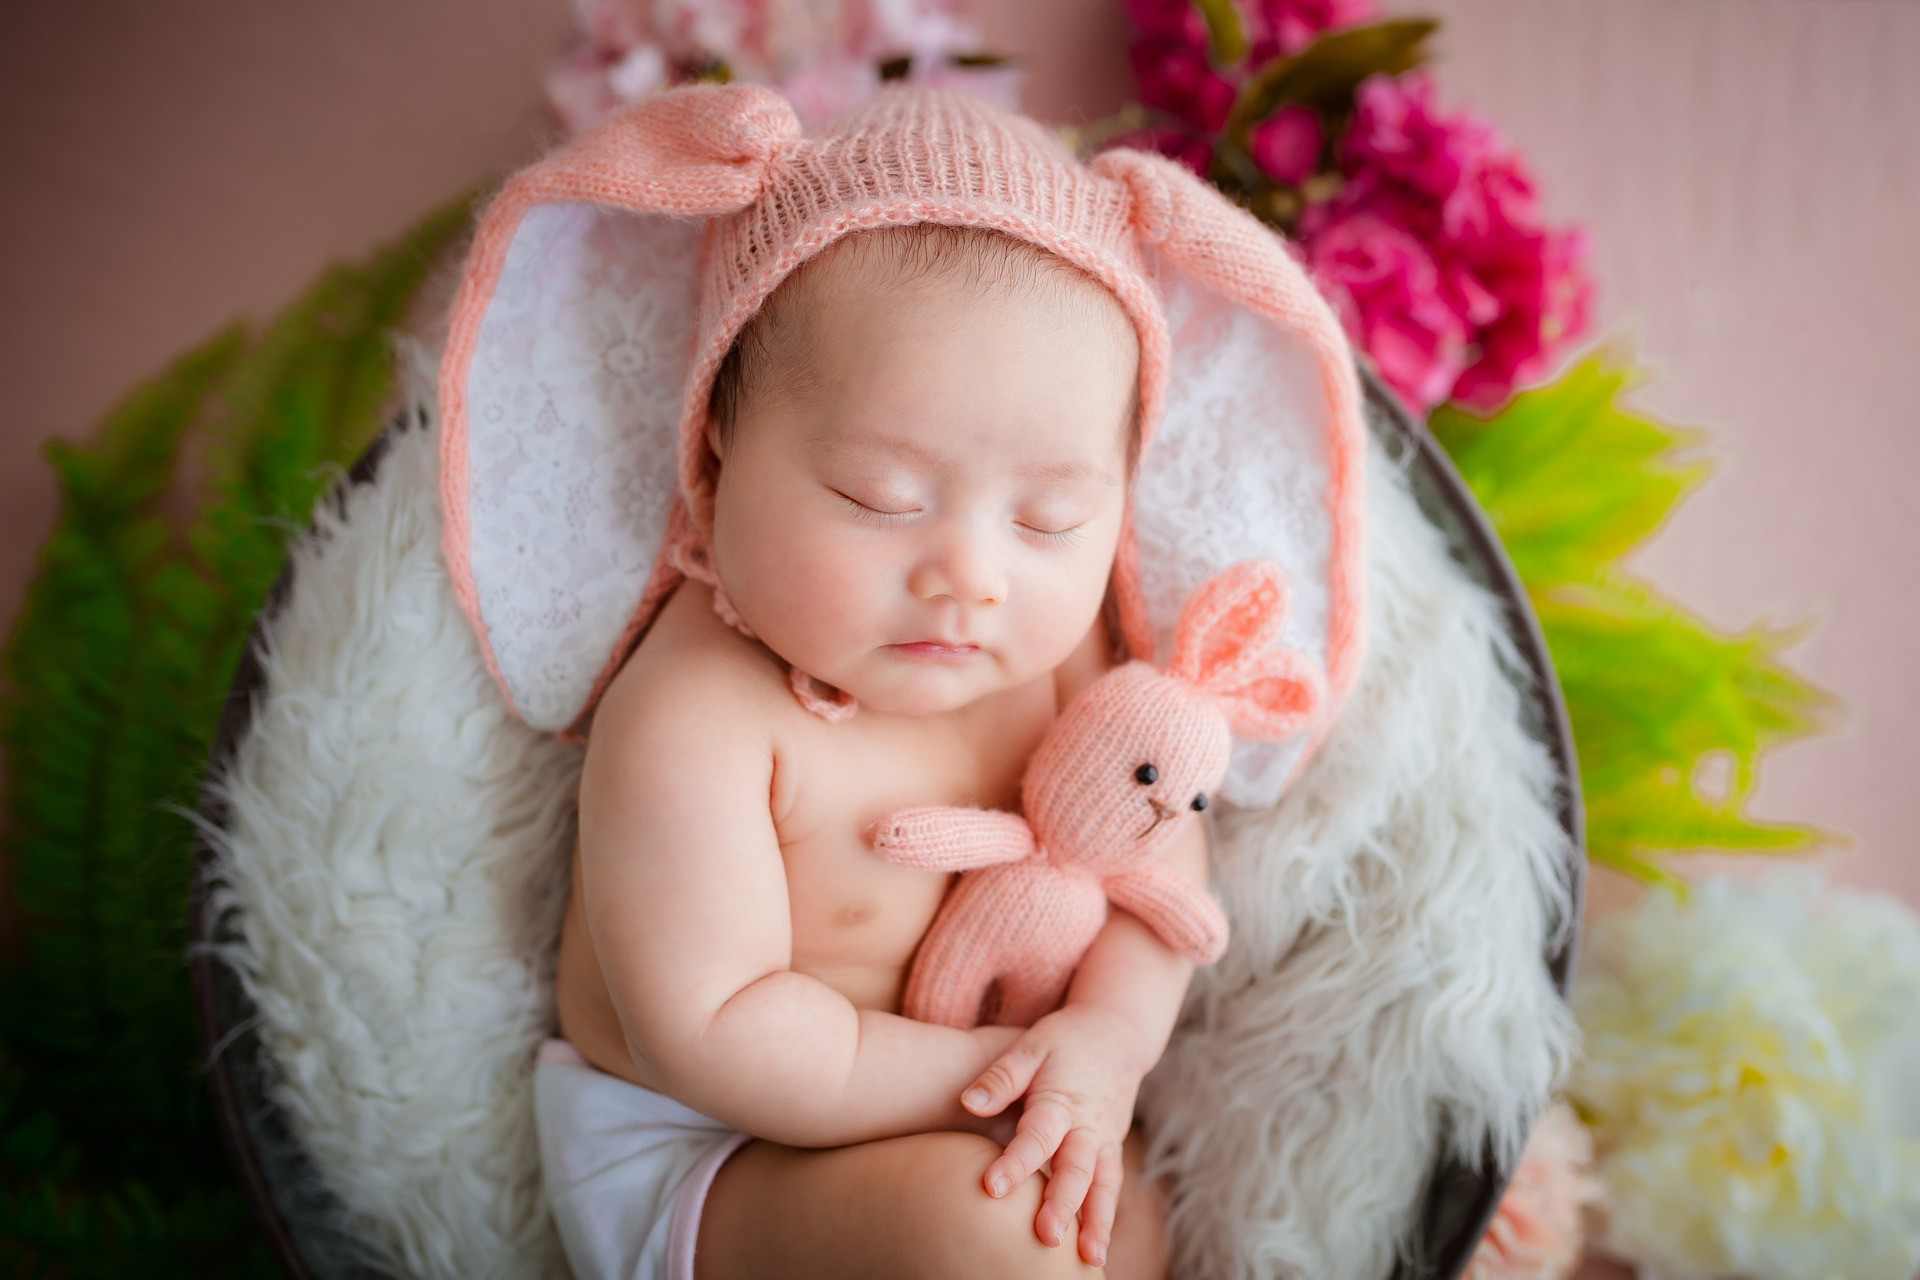 What Are the Precautions Newborn Photographer Should Consider